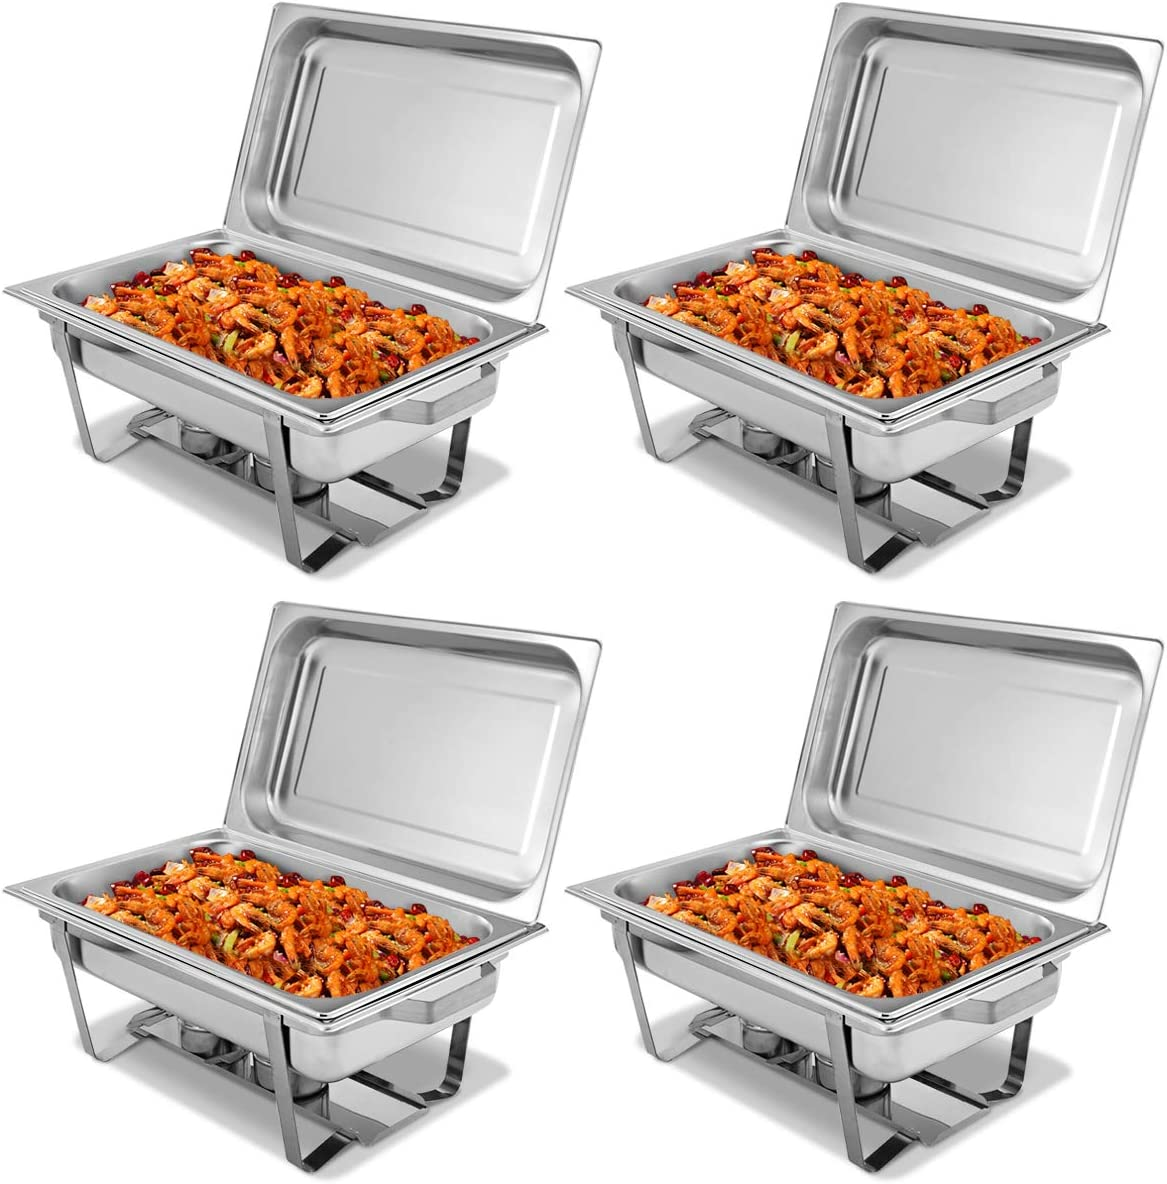 Giantex 4 Packs Chafing Dish 8 Quart Stainless Steel Chafer for Home Commercial Kitchen Party Catering Buffet Warmer Set w/Rectangular Full Size Pan, Fuel Holder